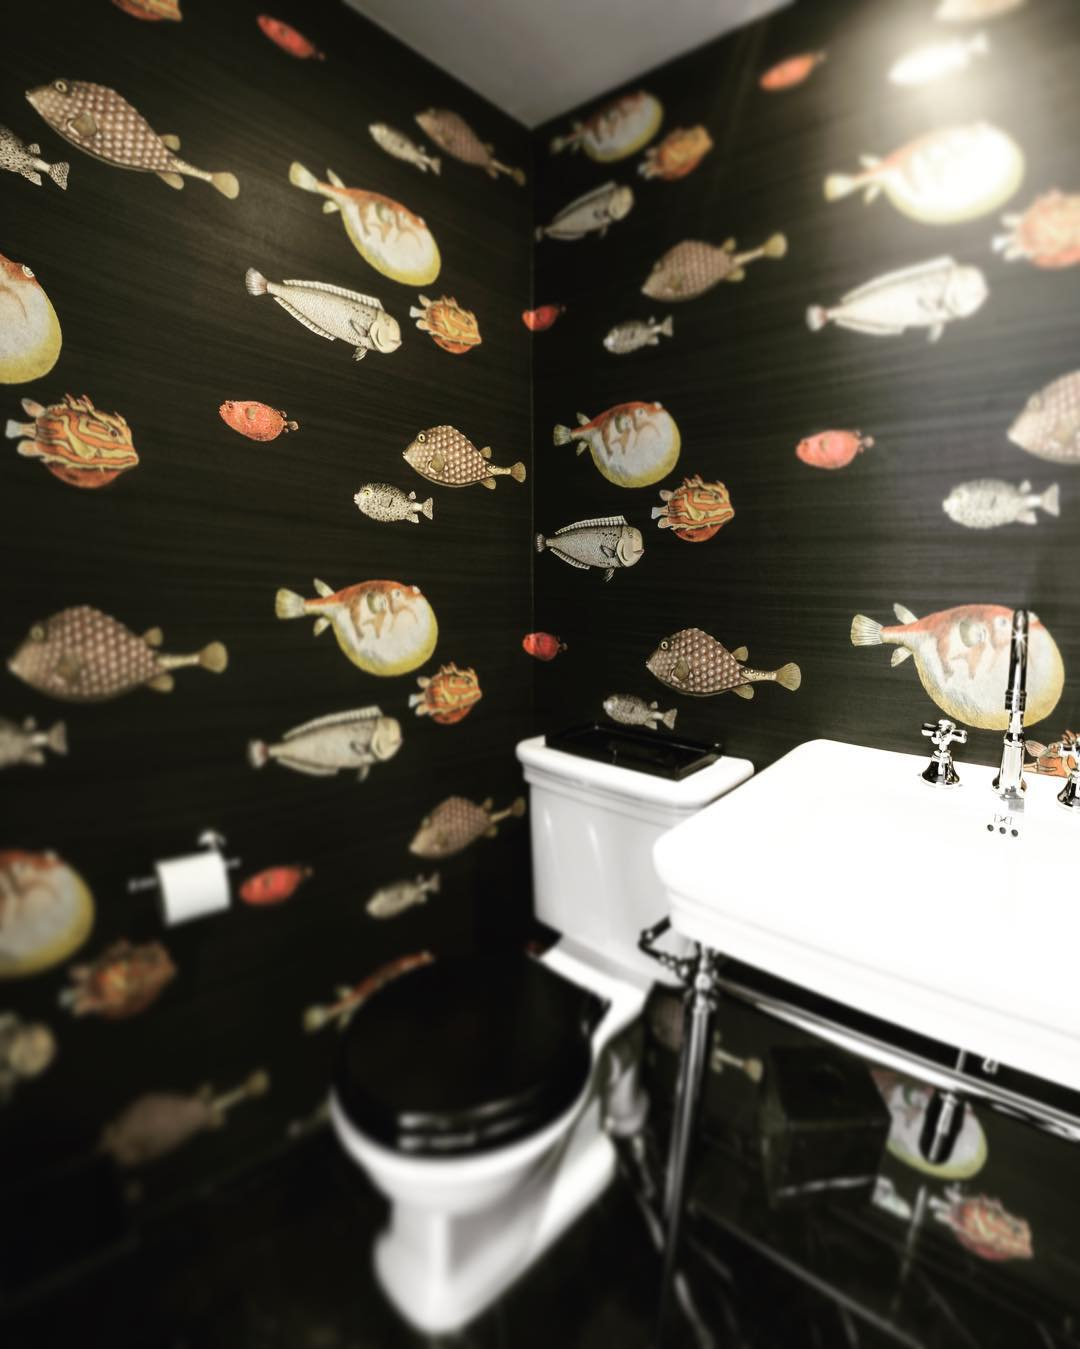 We feel like #fish today 🐟 @cole_and_son_wallpapers #devonanddevon #wallpaper #fornasetti #bathroomdesign #dubaiinteriordesign #residentialproject #superfuturedesign